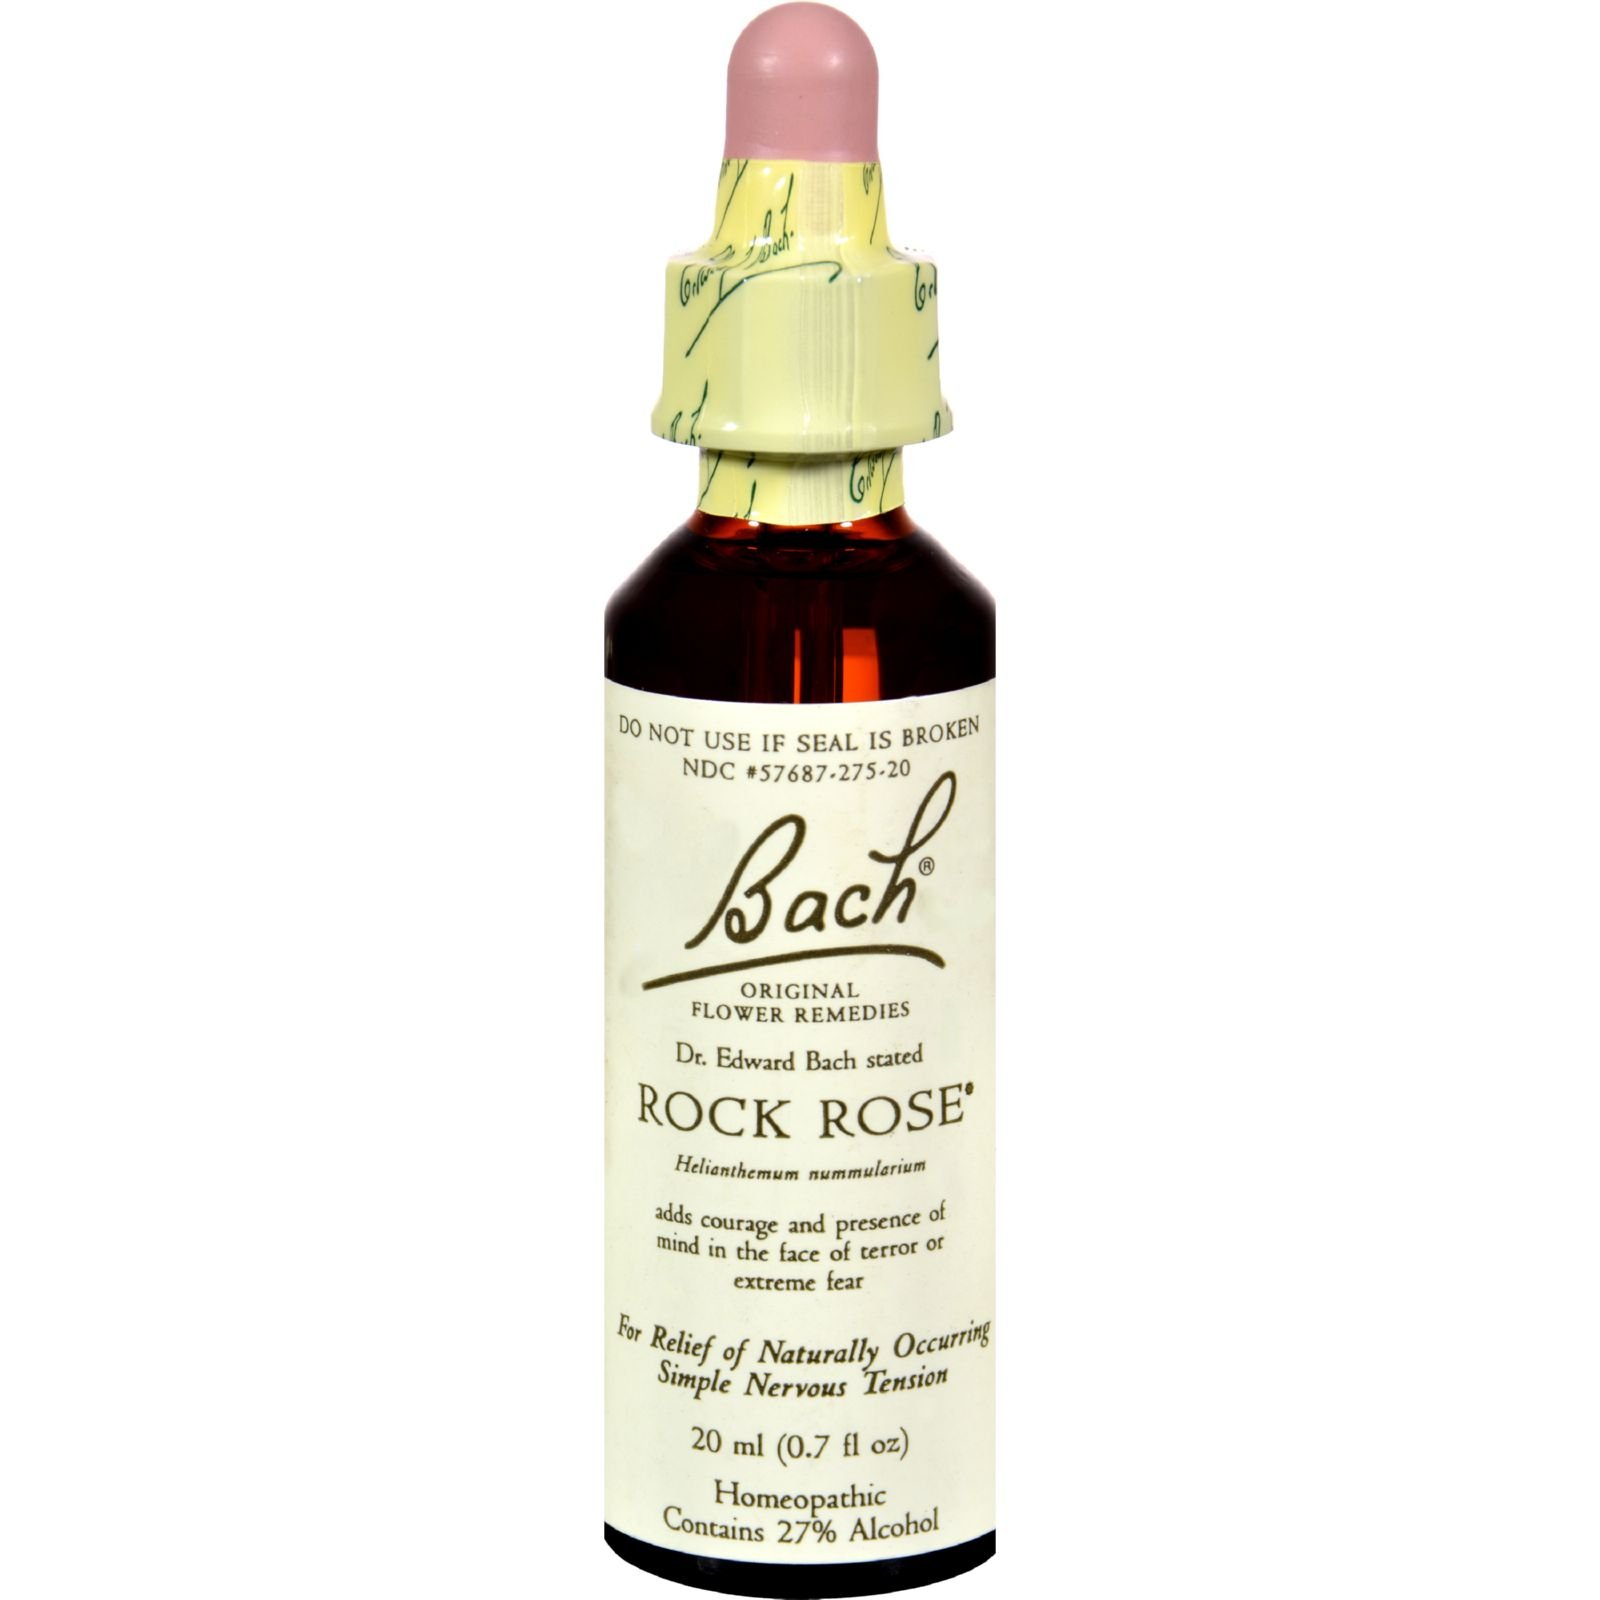 Bach Flower Remedies Essence Rock Rose - Homeopathic Remedy - 0.7 Fluid Ounce